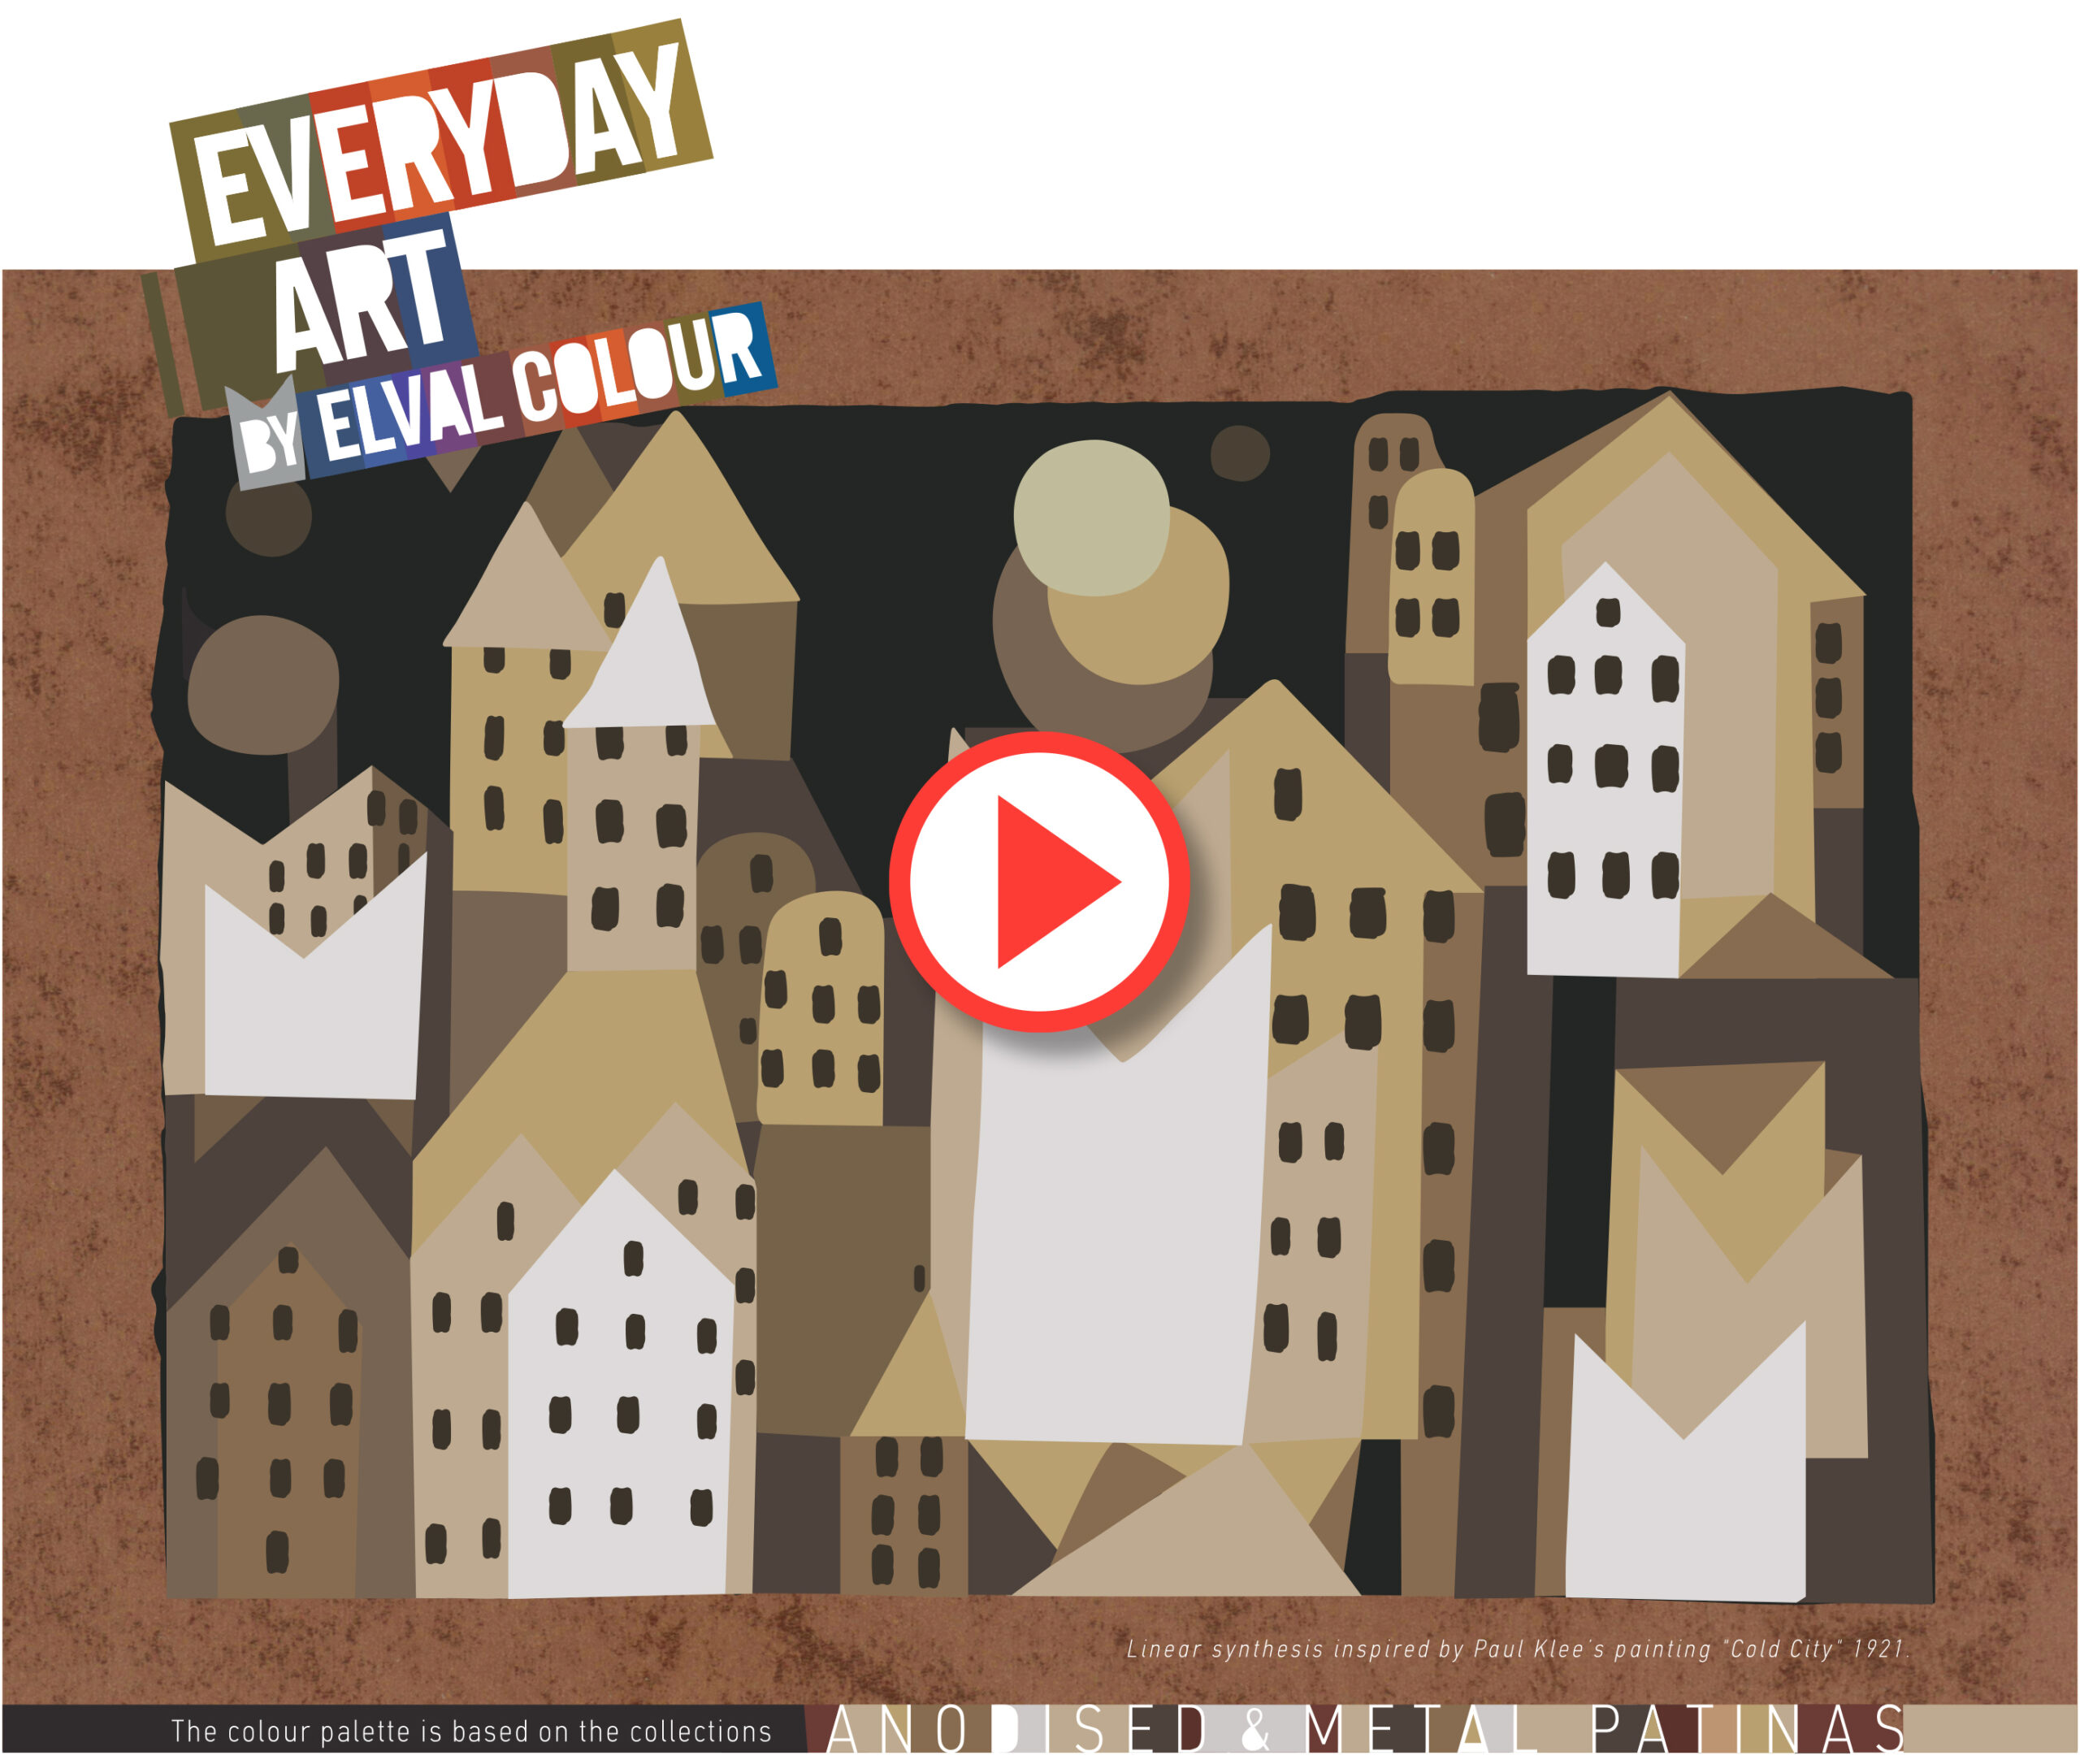 everyday art by elval colour